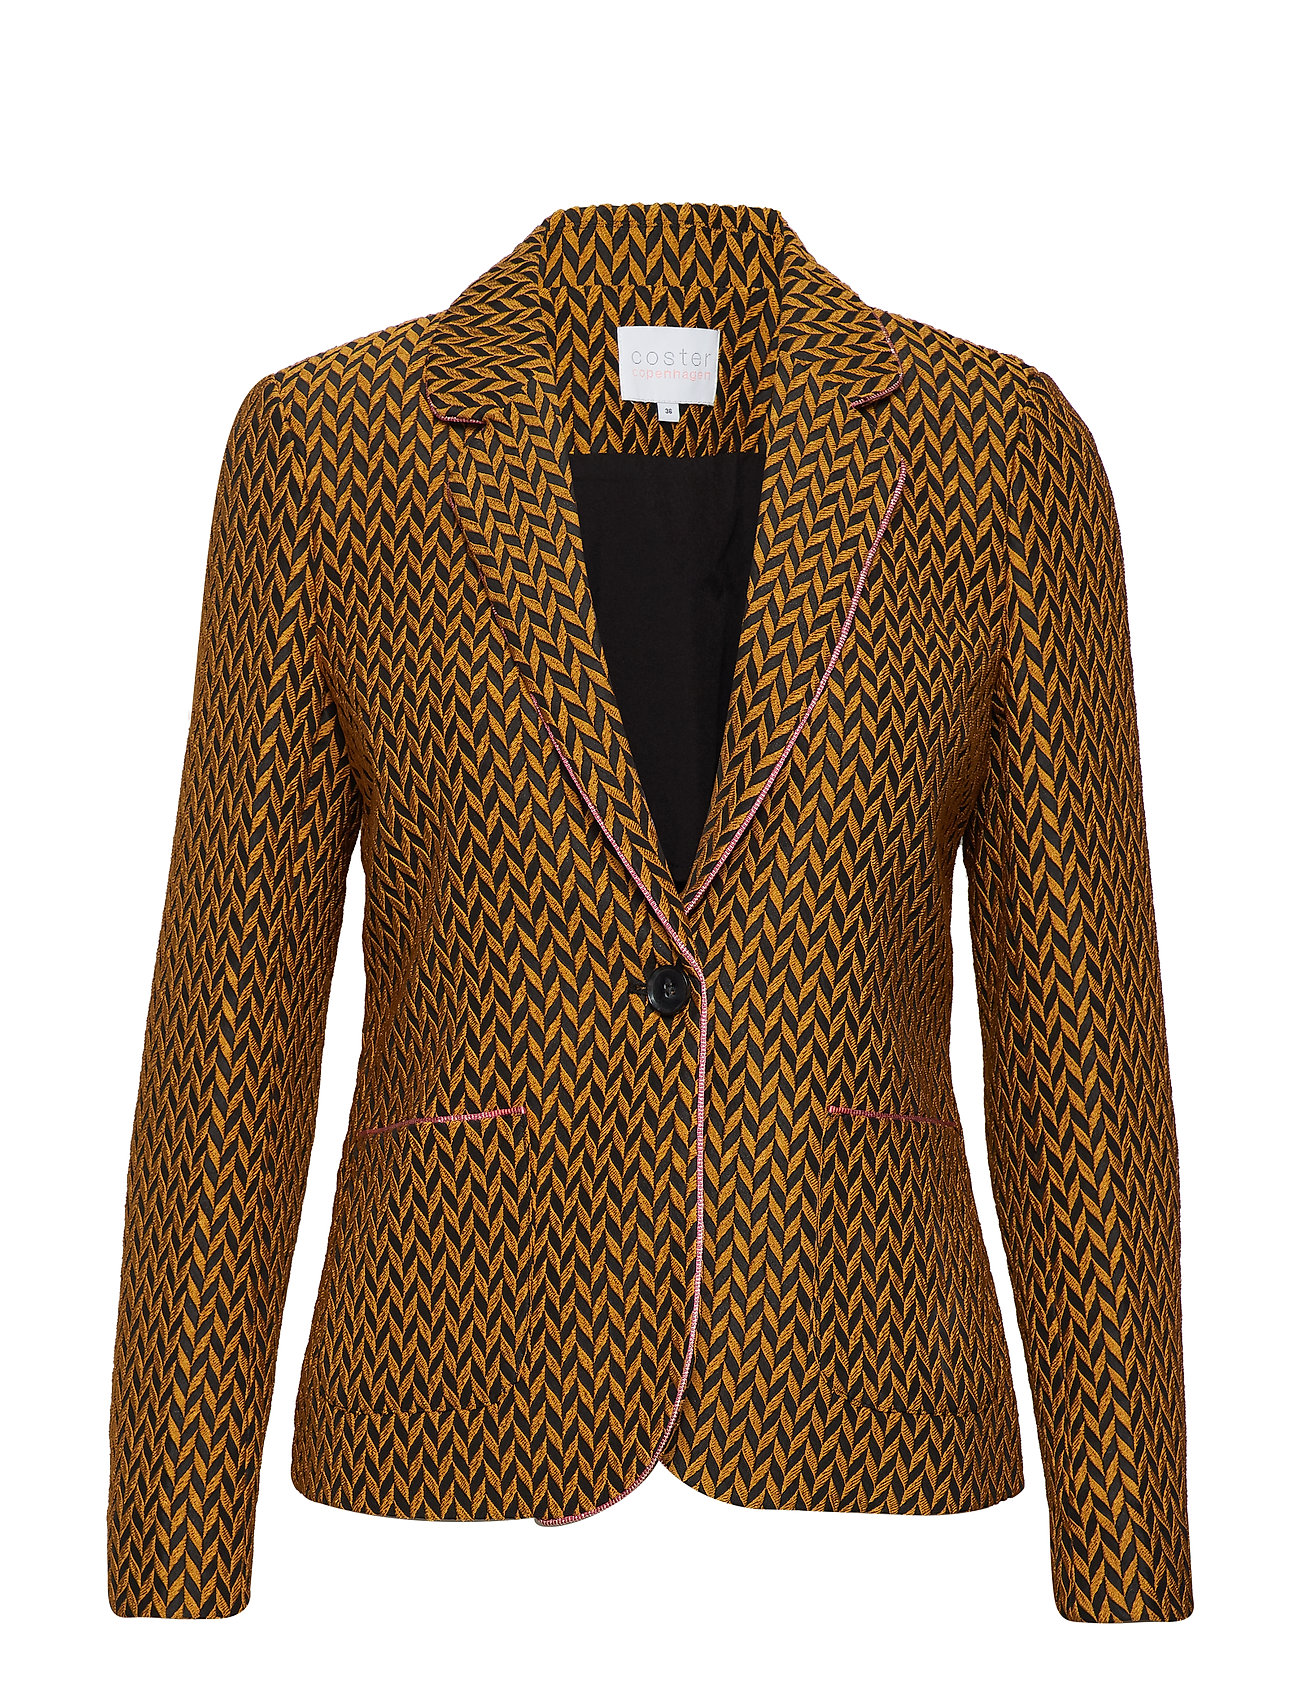 Coster Copenhagen Suit jacket w. pipings in jacquard - GOLD SPICE